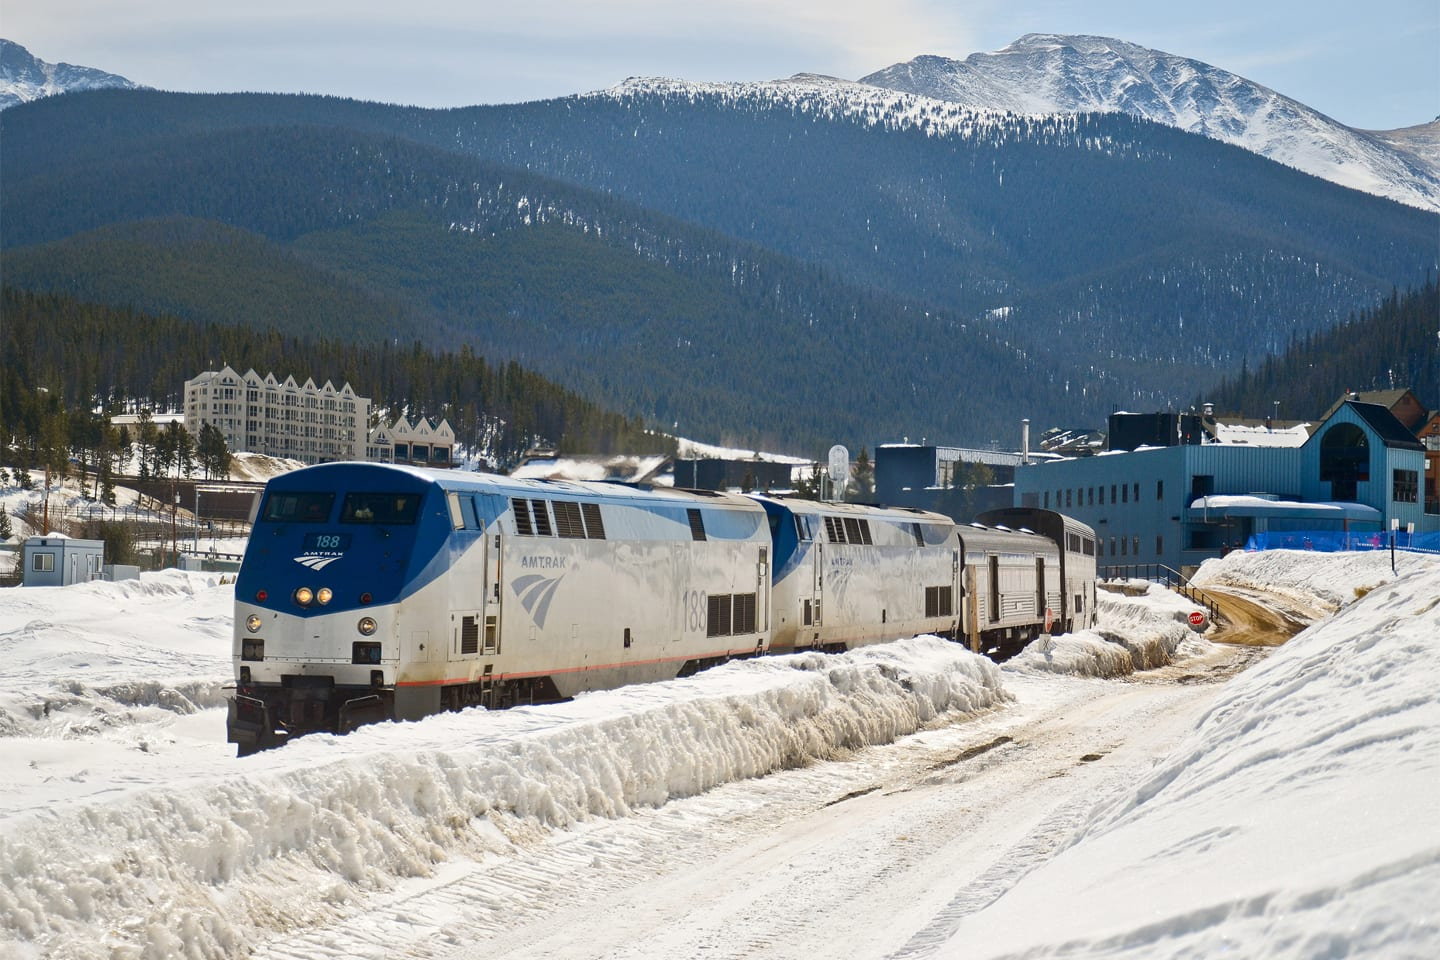 Amtrak Winter Park Ski Train Fraser Colorado